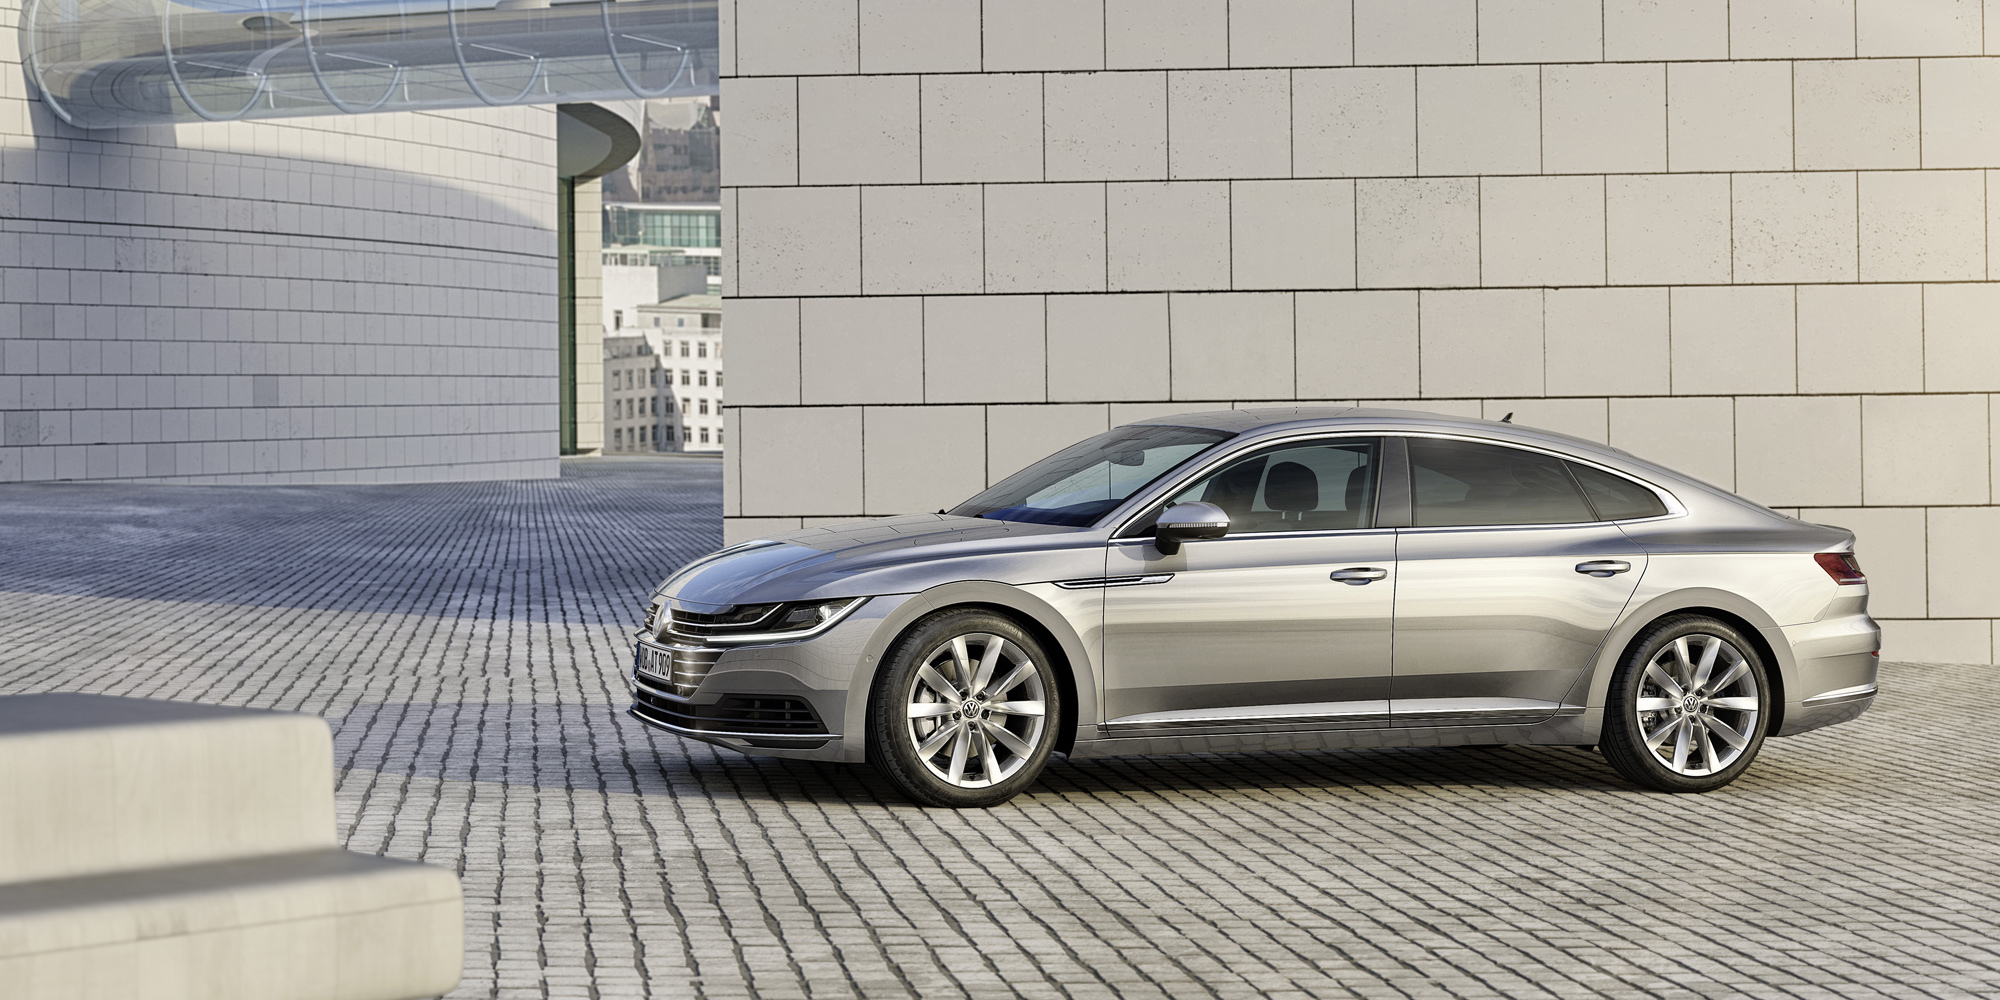 2000x1000 - Volkswagen Arteon Wallpapers 12